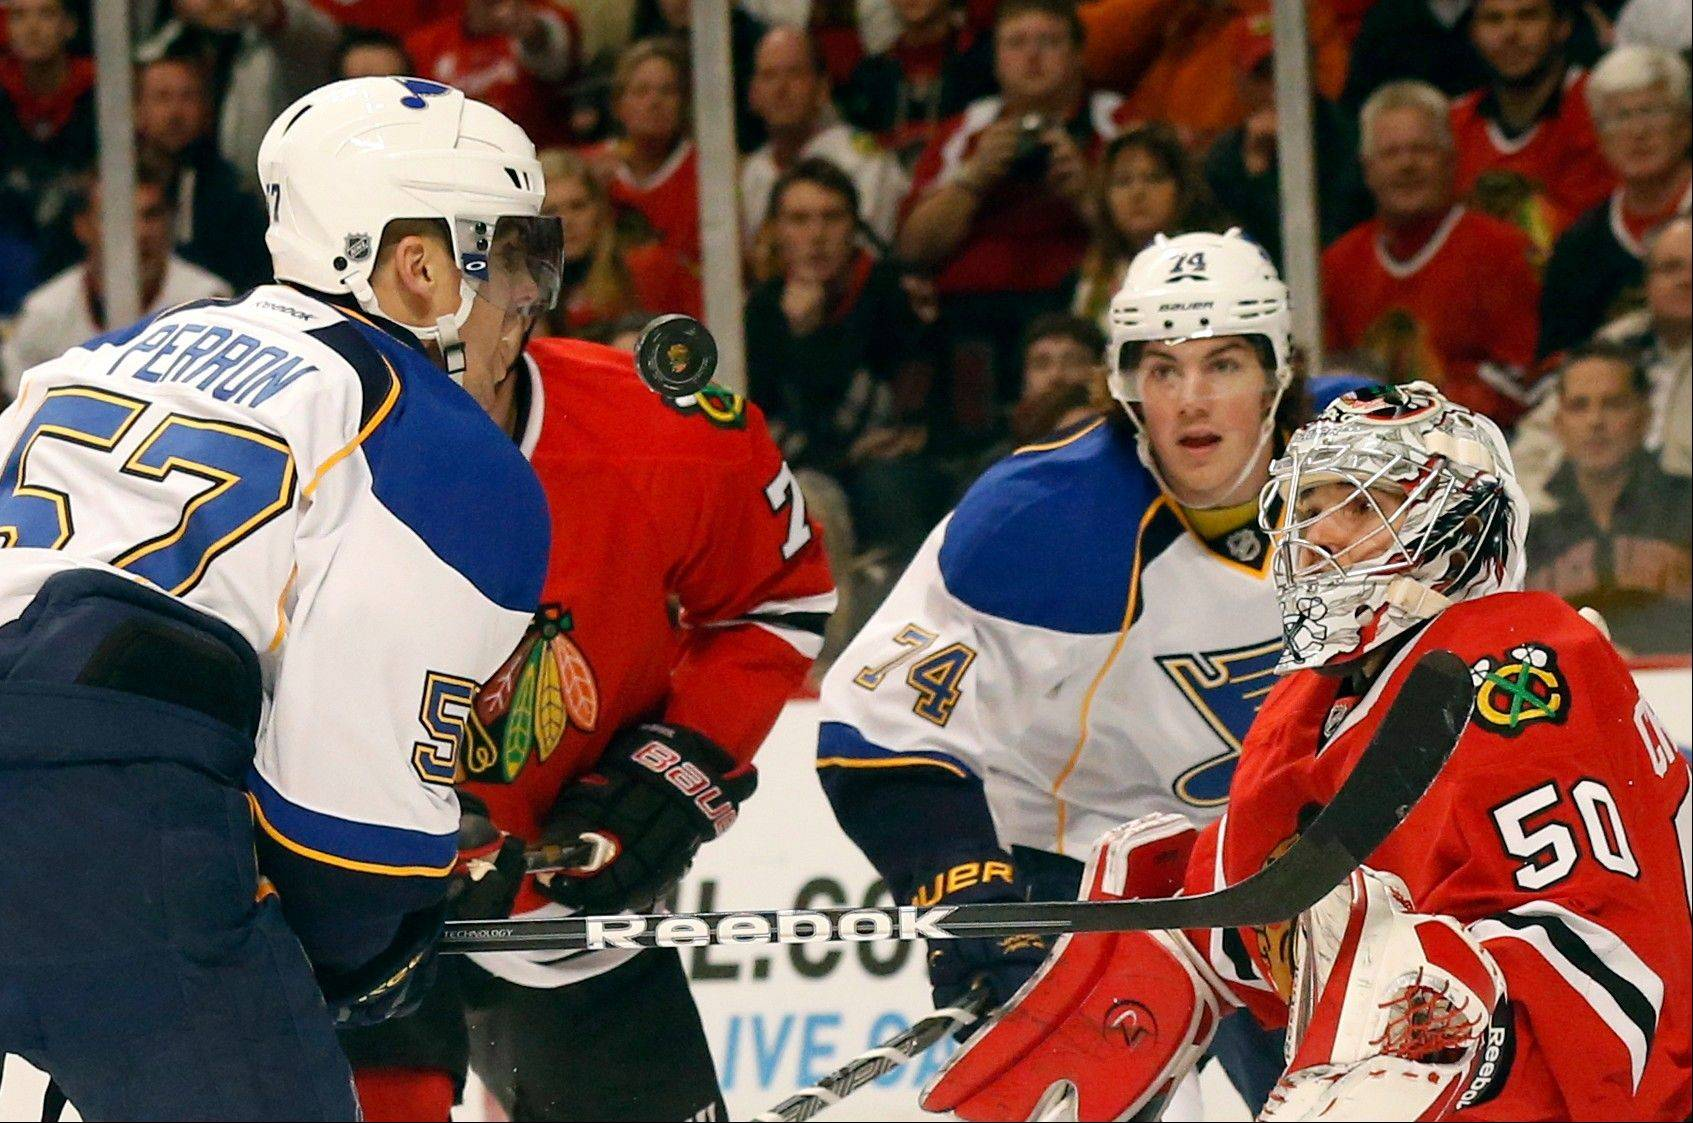 St. Louis Blues left wing David Perron , right wing T.J. Oshie , and Chicago Blackhawks goalie Corey Crawford watch the puck during the first period.